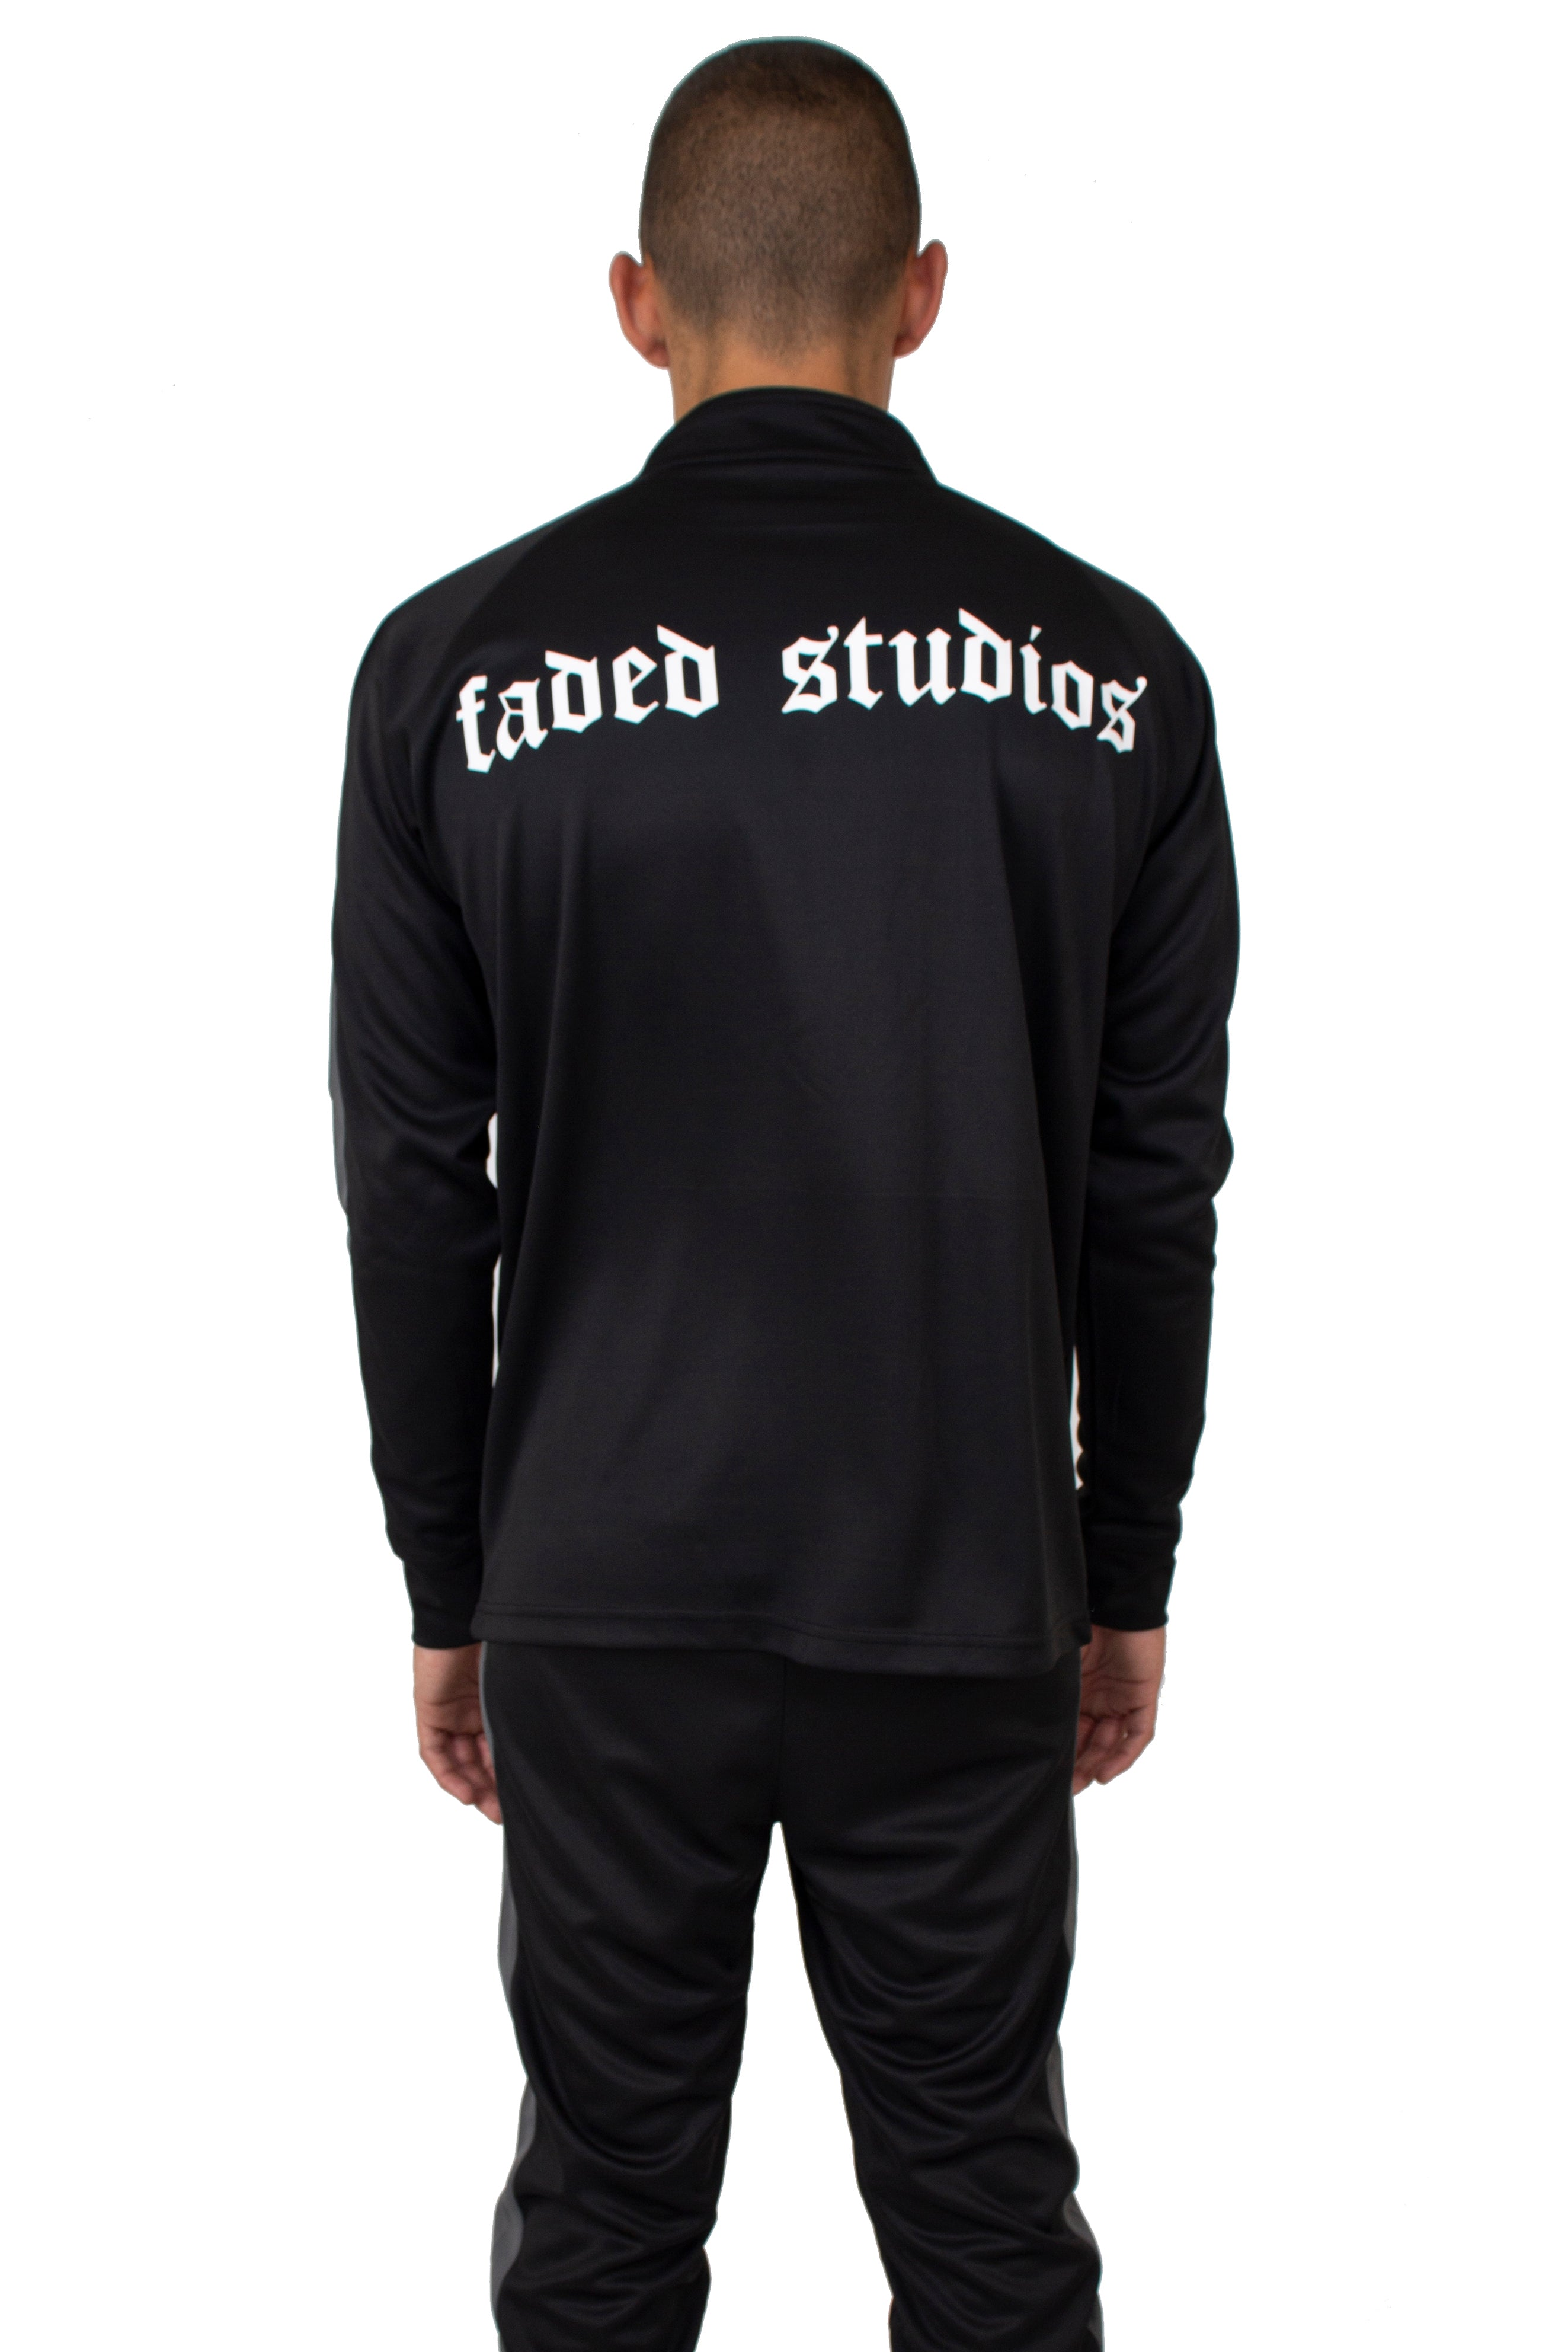 V1 Tracksuit - Faded Studios